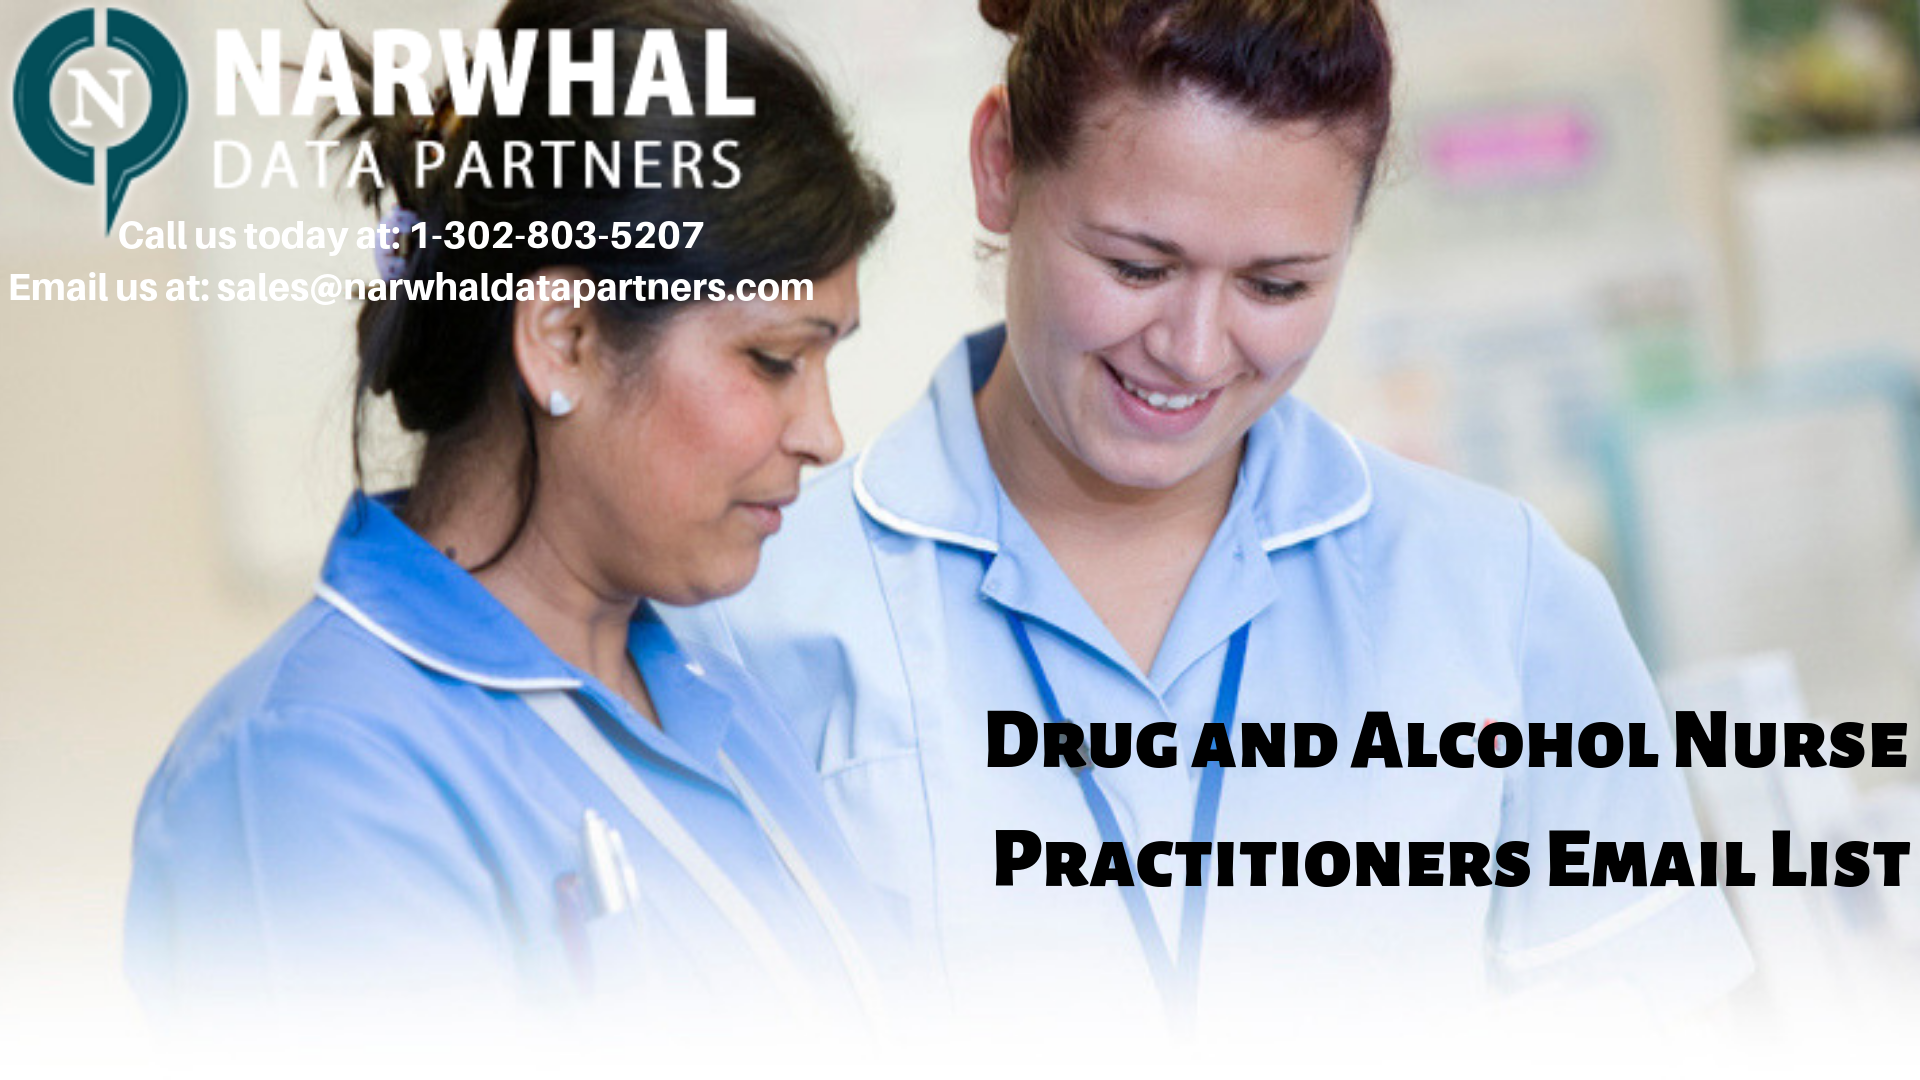 http://narwhaldatapartners.com/drug-and-alcohol-nurse-practitioners-email-list.html